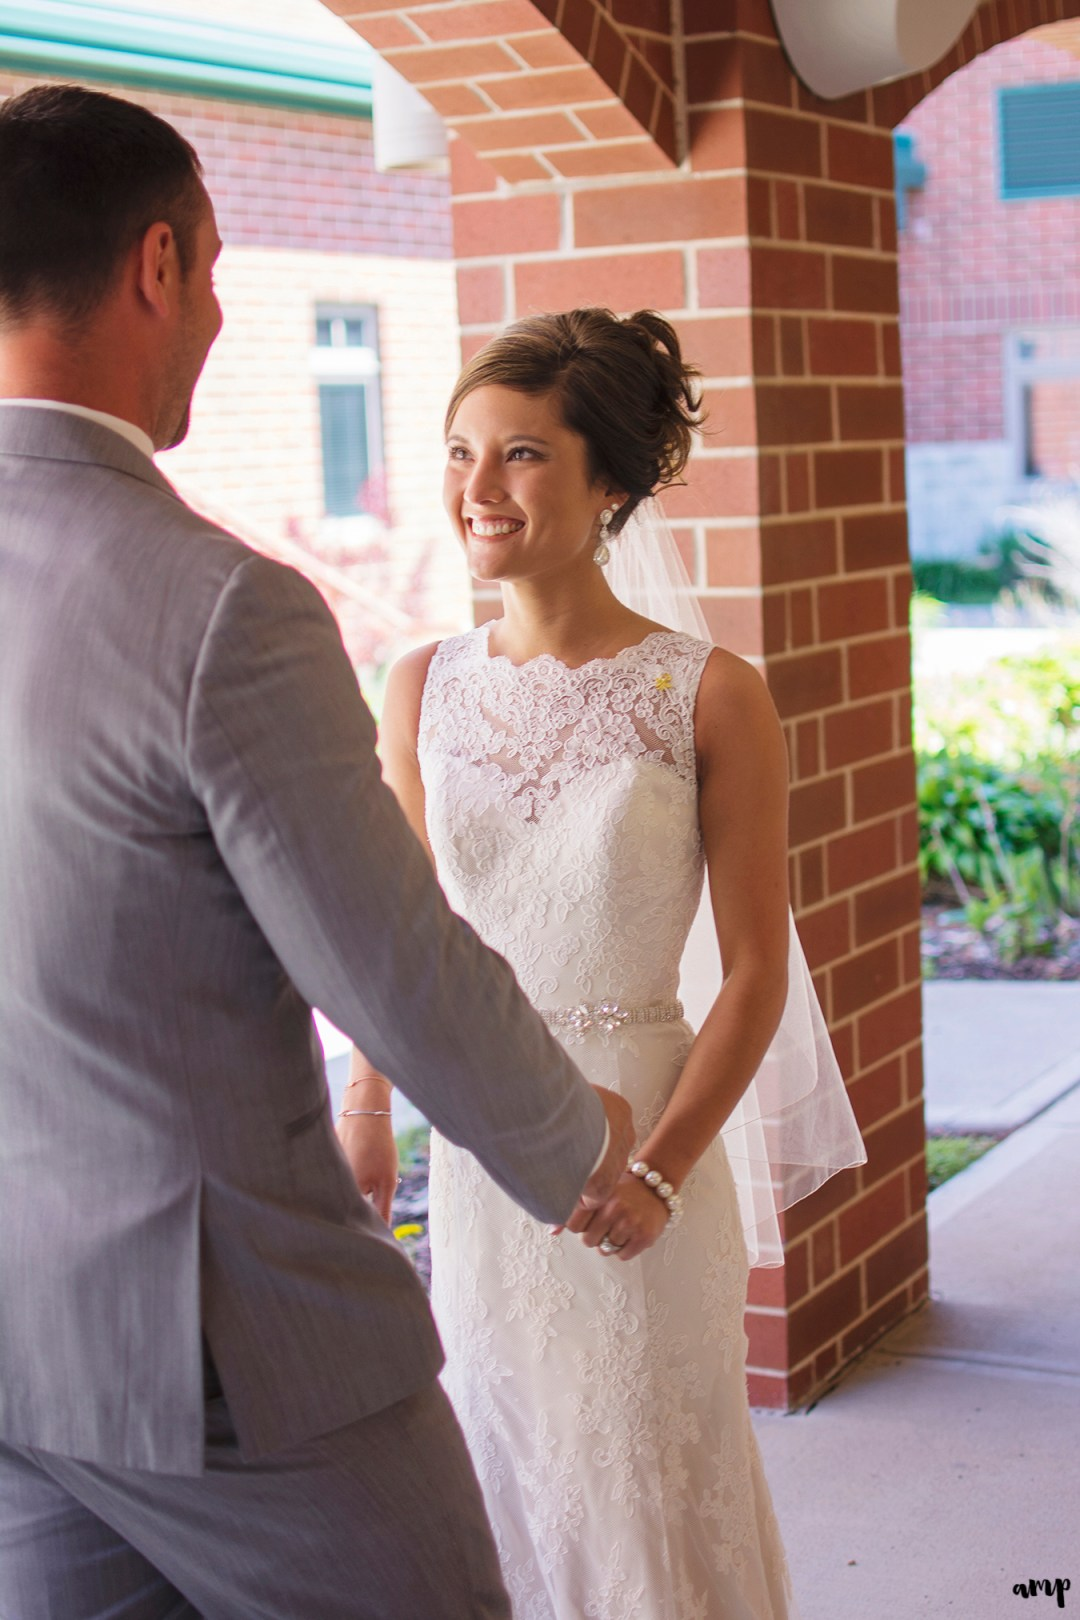 Bride & groom's first look in church courtyard